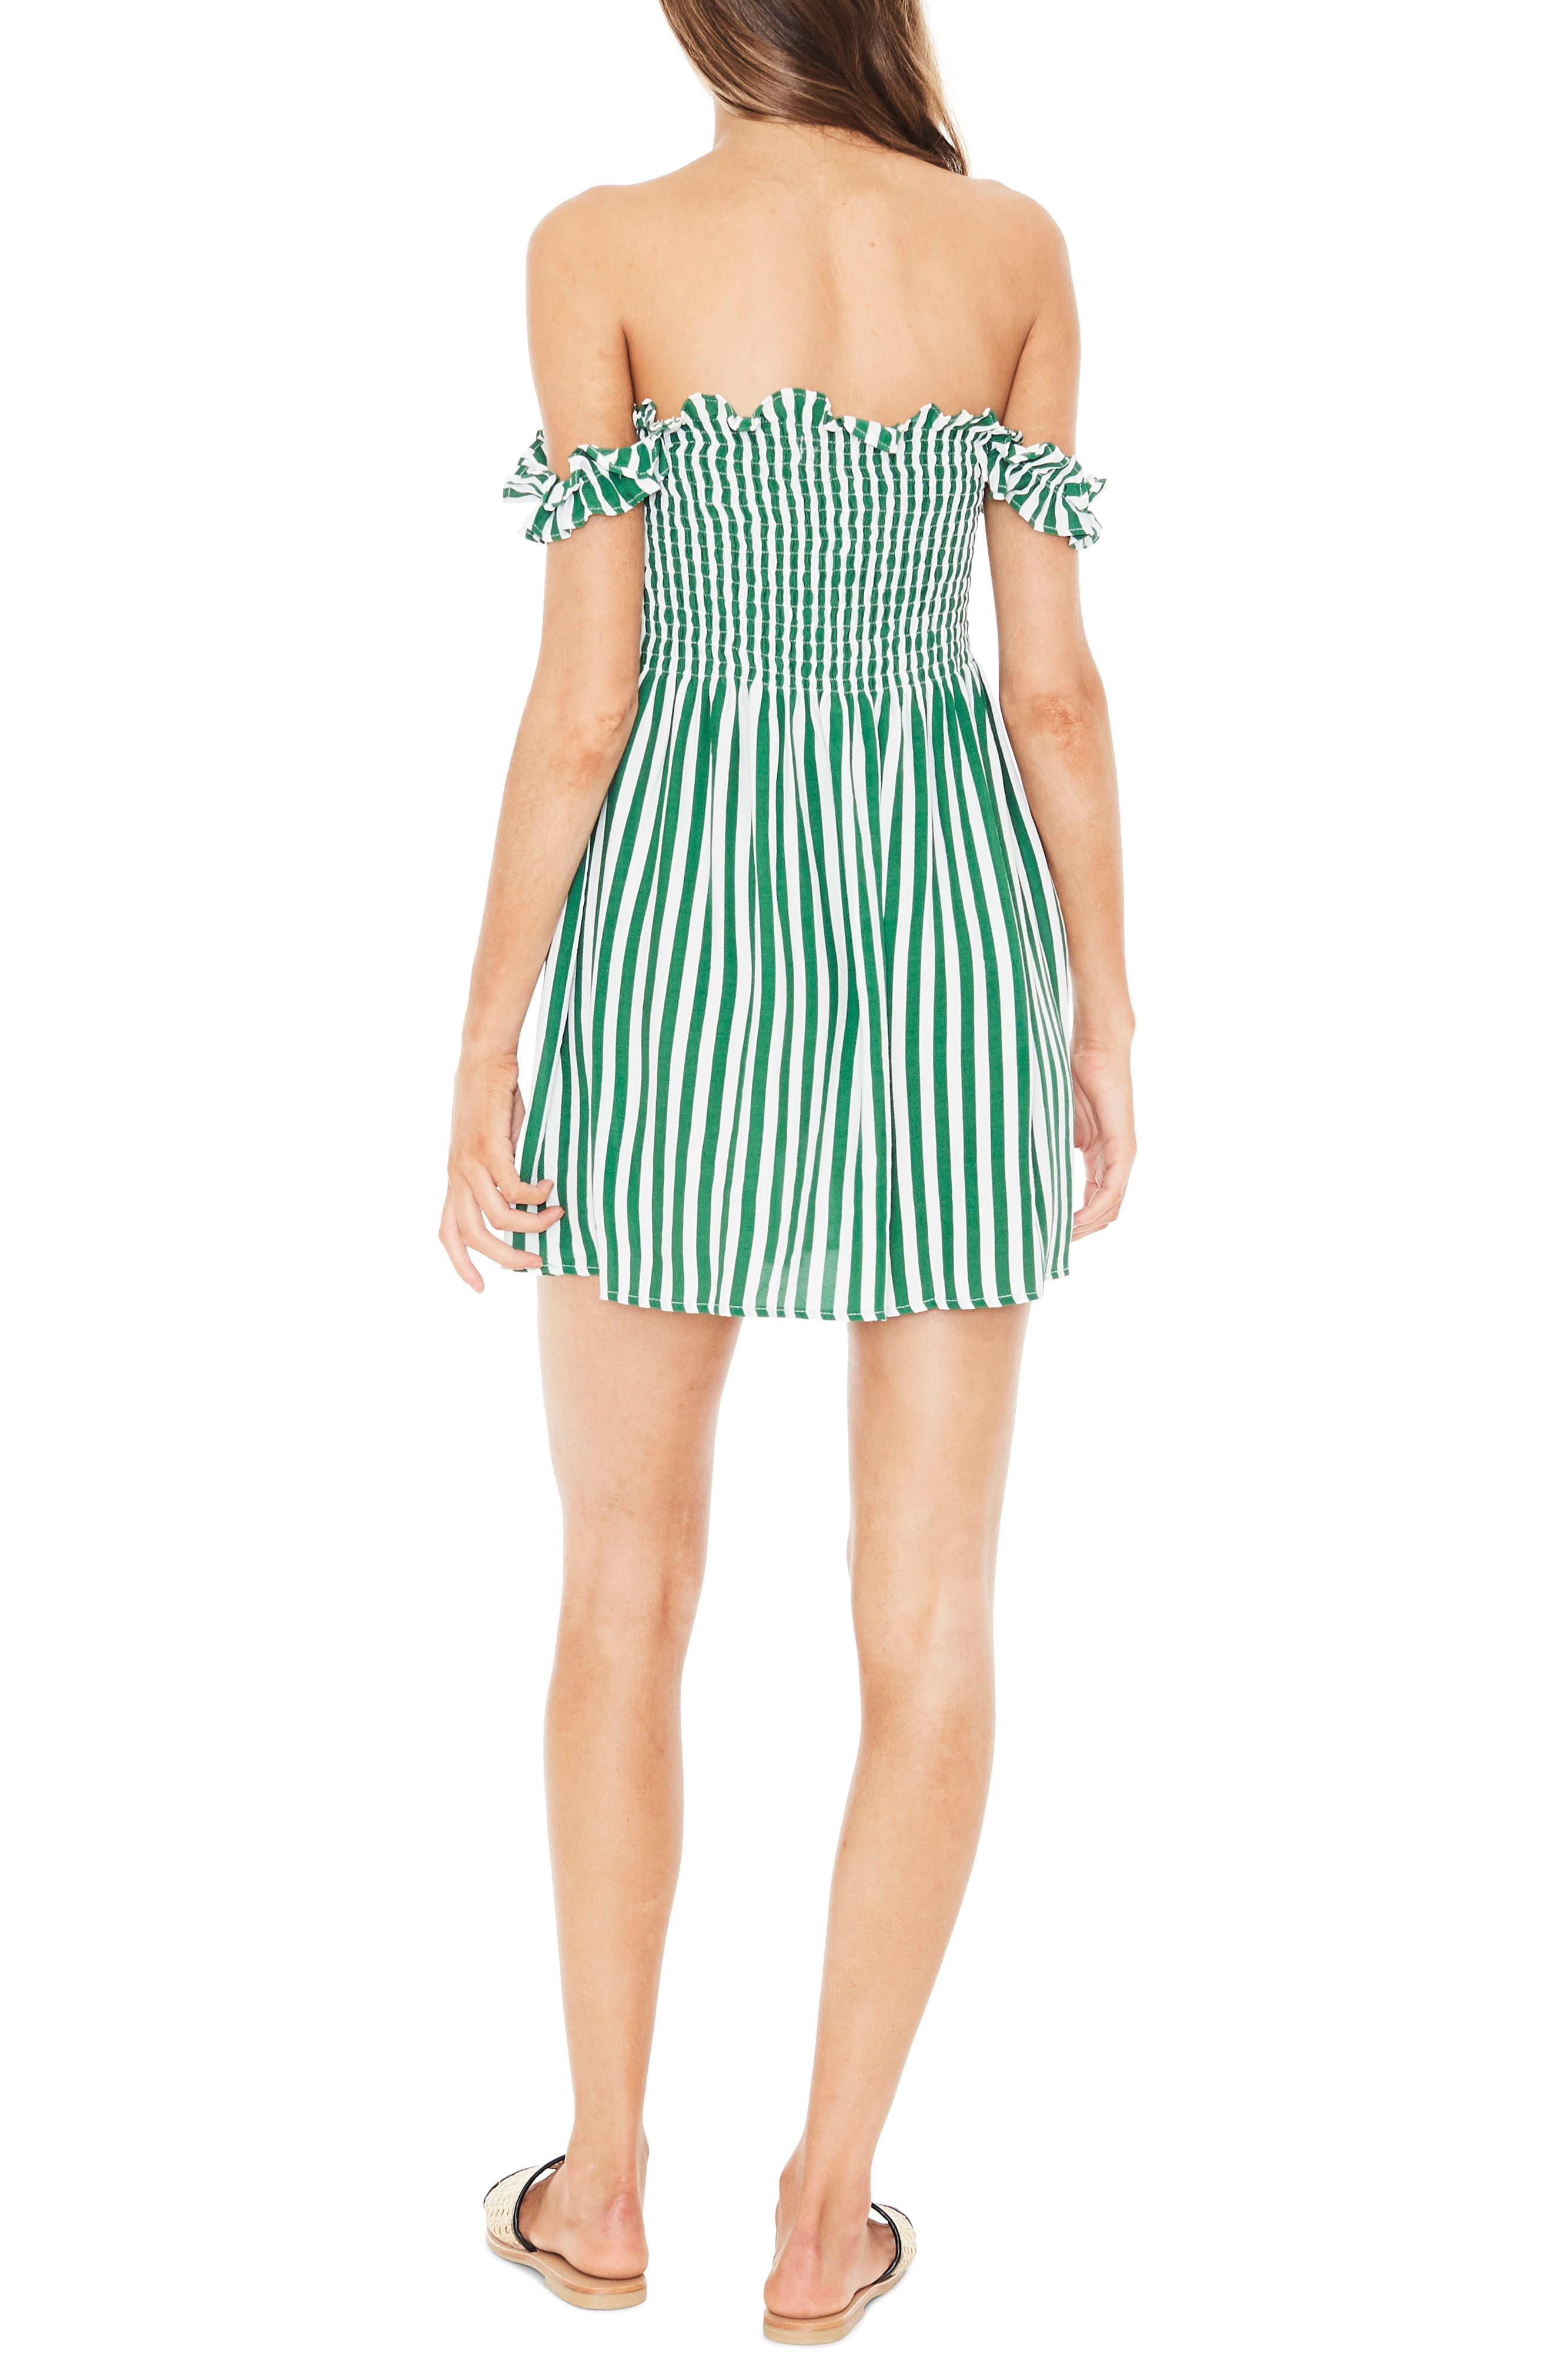 Mika Smocked Dress,                             Alternate thumbnail 2, color,                             ZEUS STRIPE PRINT